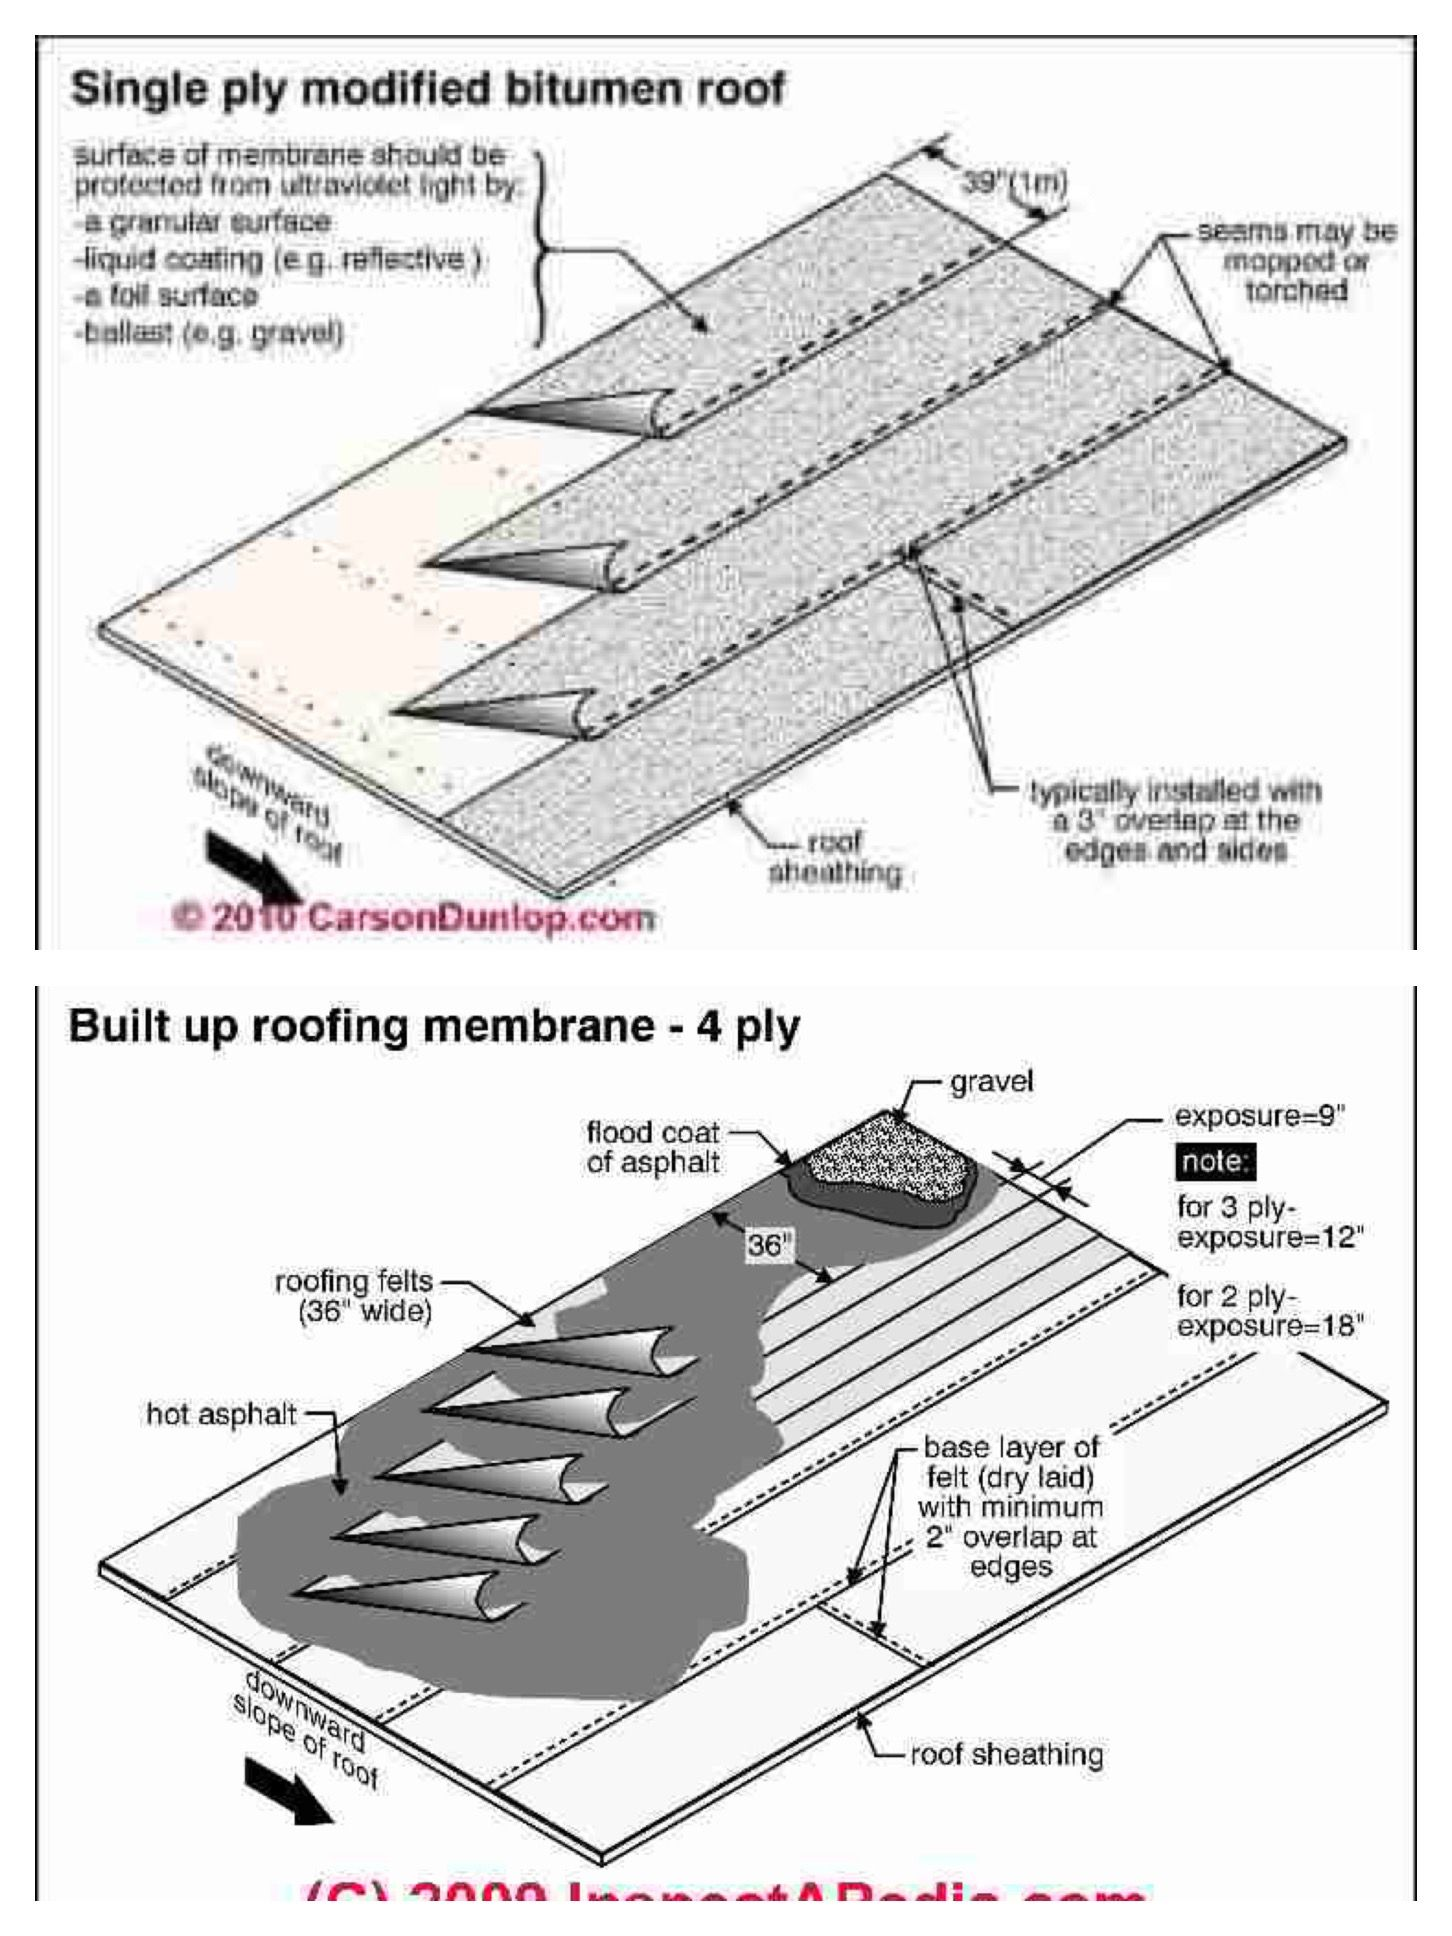 Single Ply Vs Built Up Roof Built Up Roofing Refers To